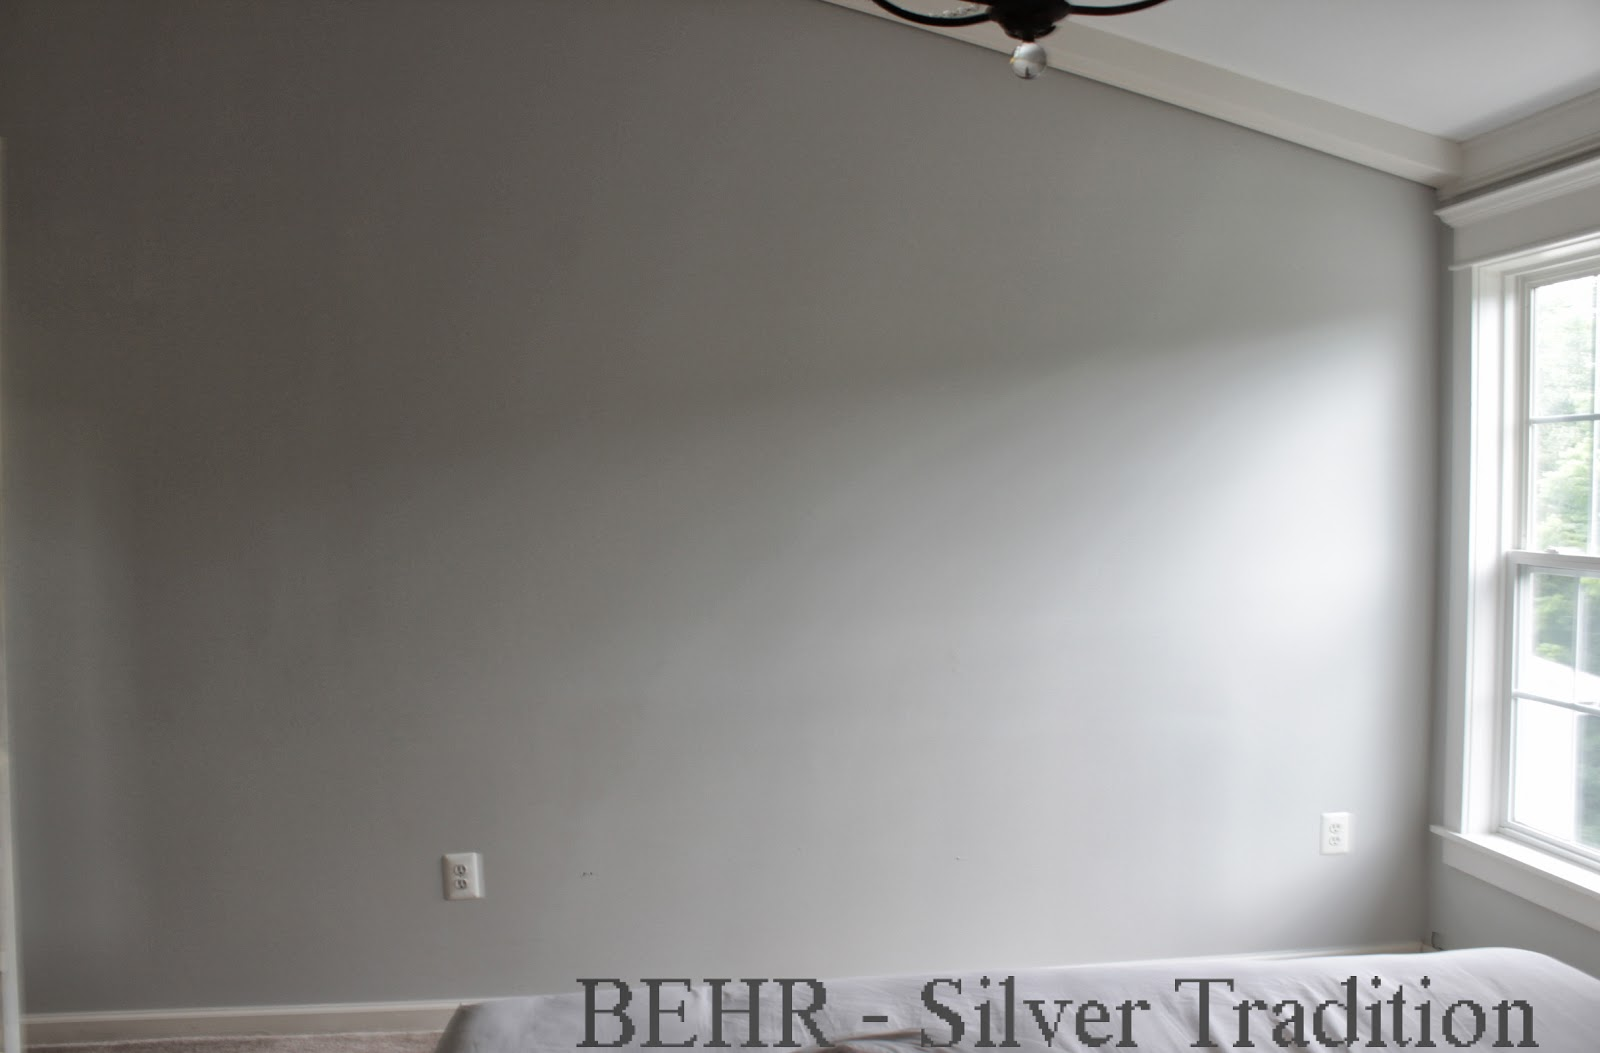 Behr Silver Tradition Flat 1600 1053 Home